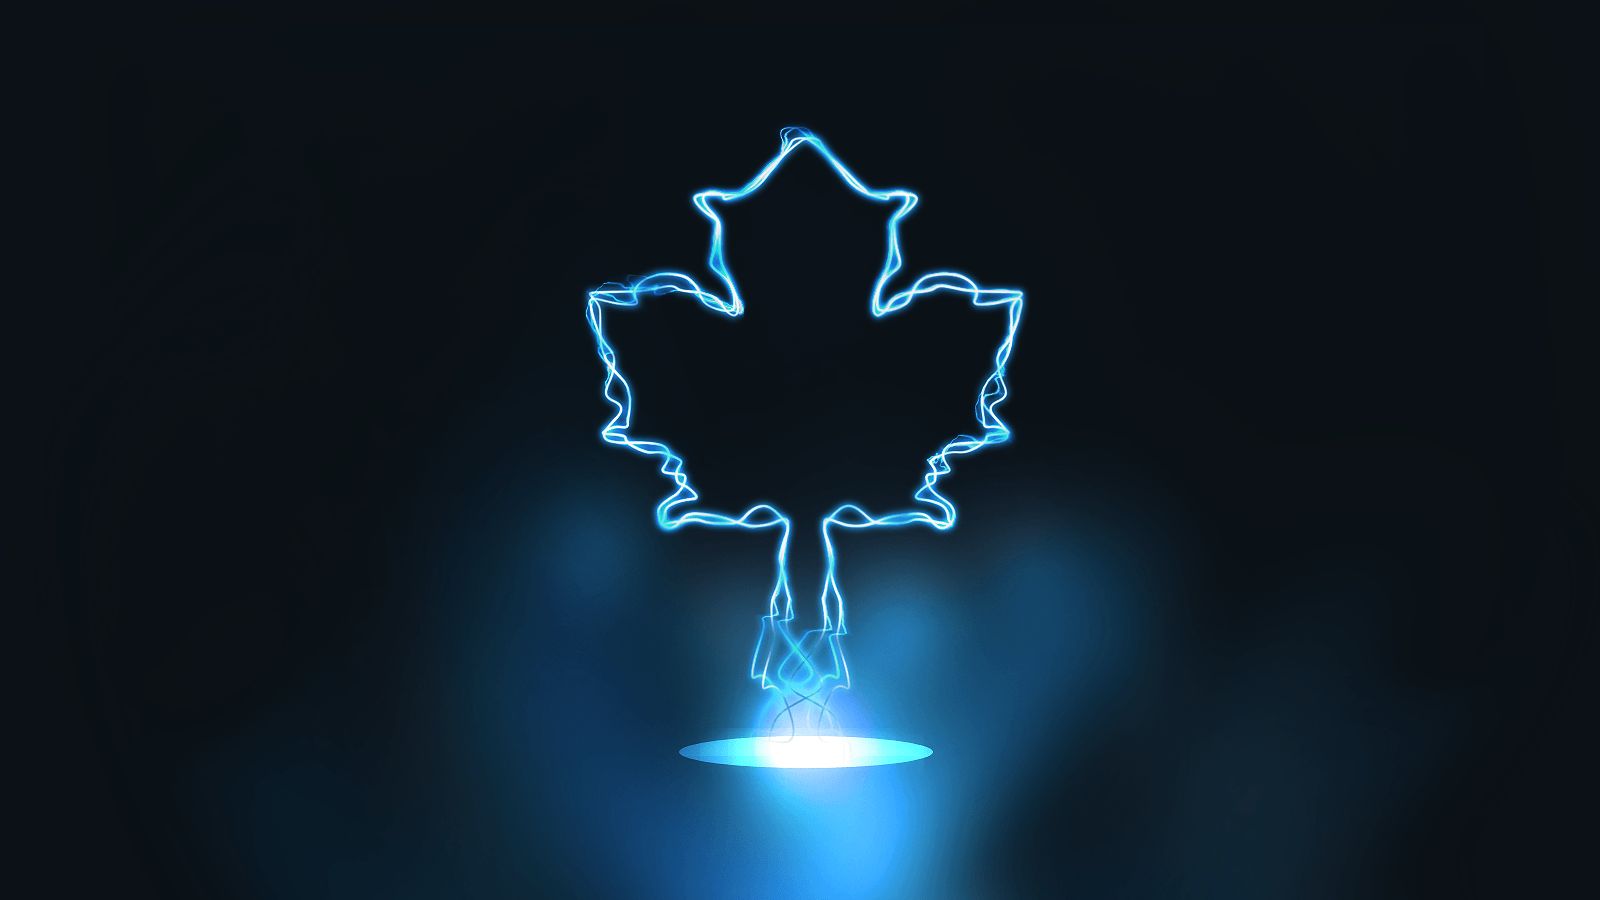 Toronto Maple Leafs Wallpapers by TieClark